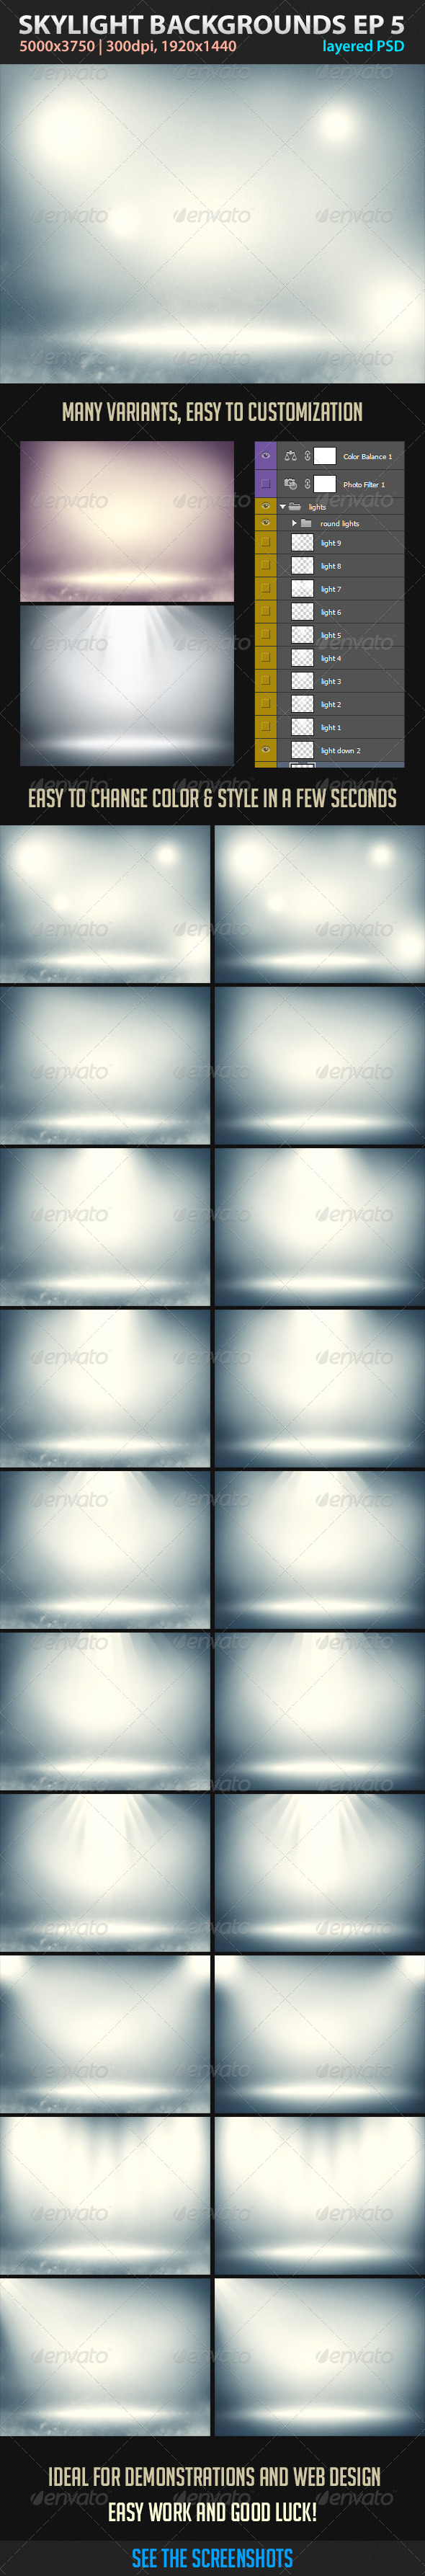 GraphicRiver Skylight Backgrounds EP 5 4384508